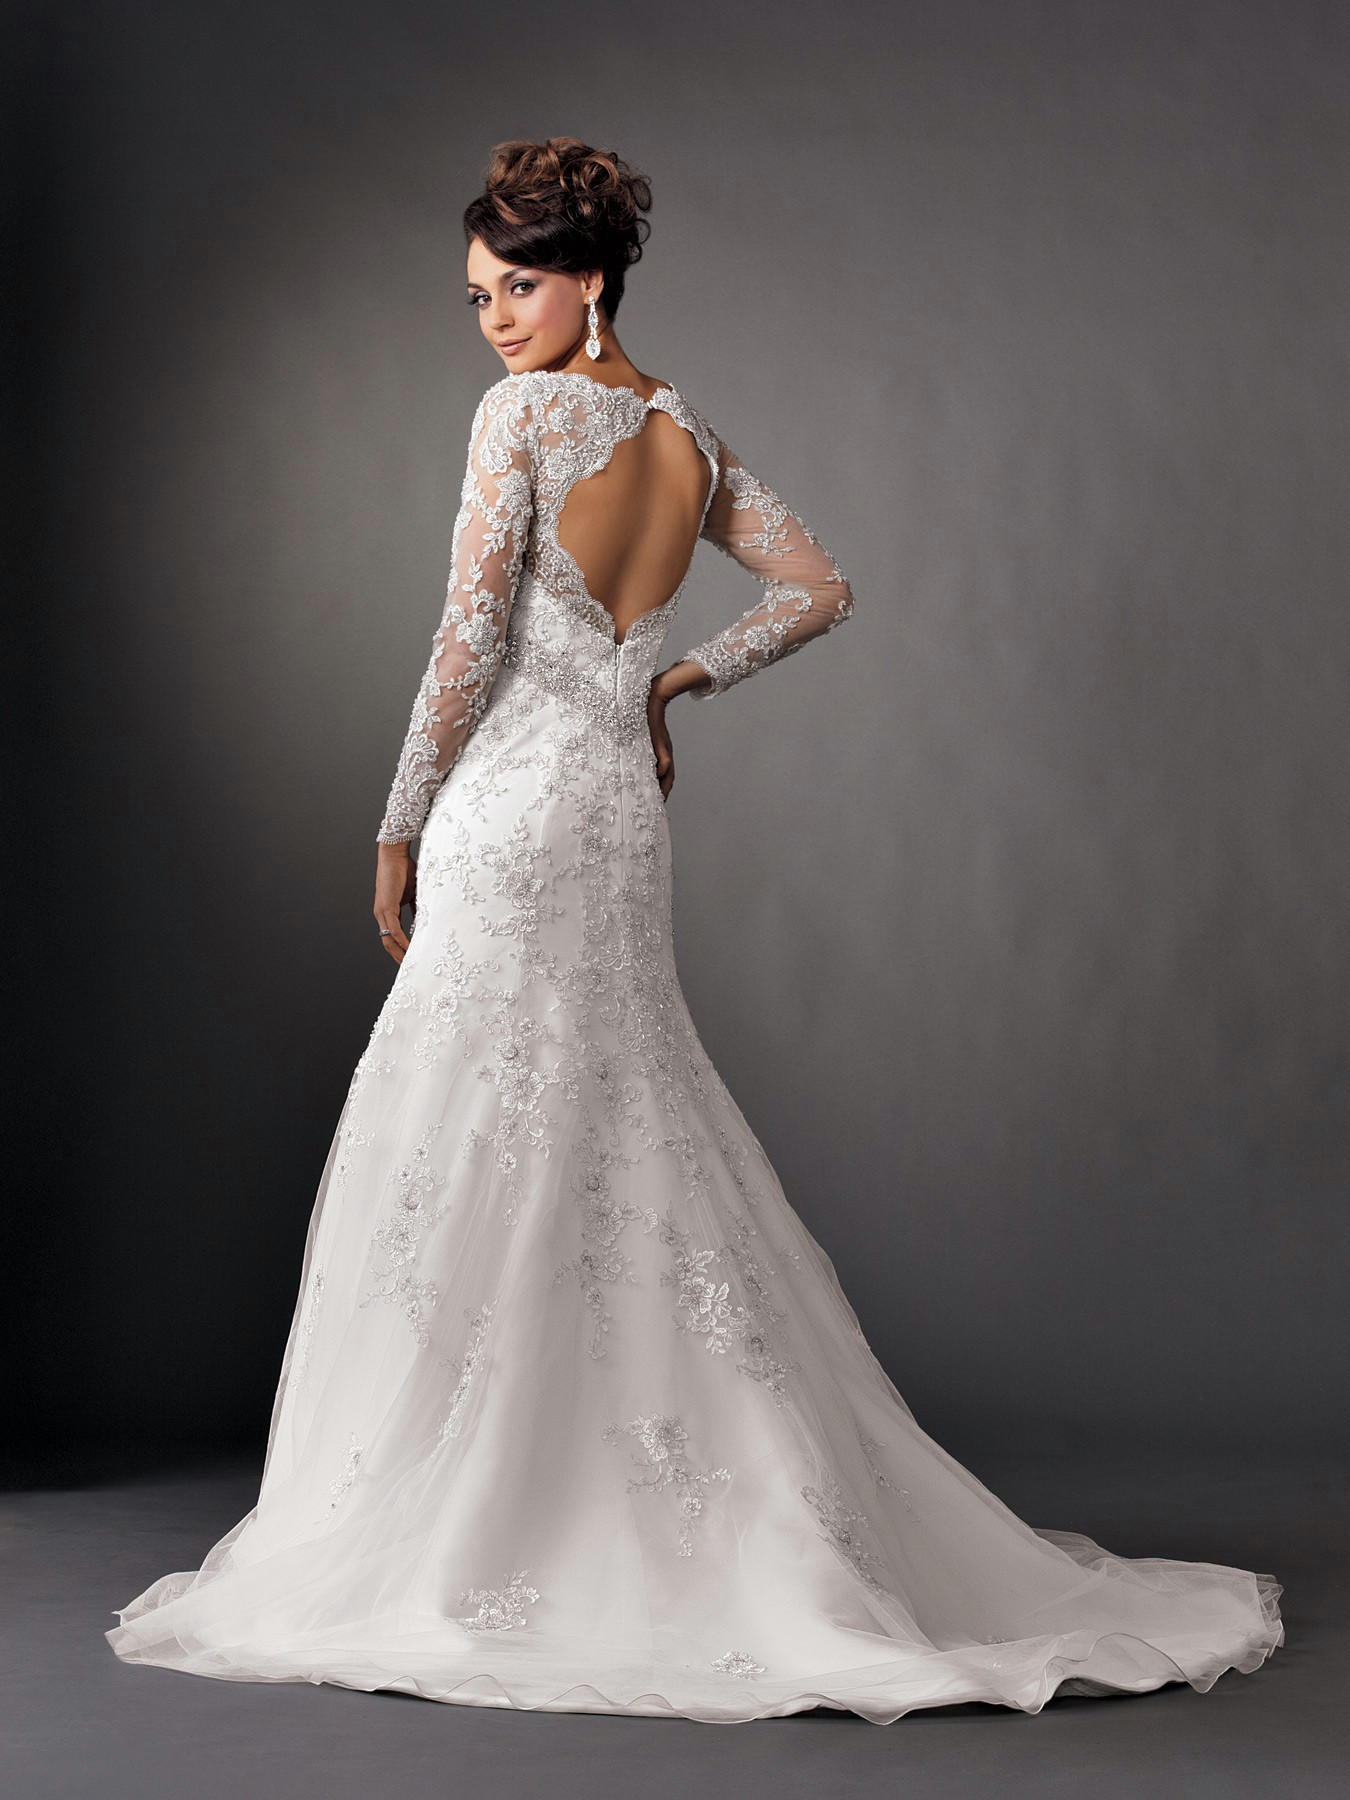 Lace Wedding Dresses For   On Bidorbuy : Wedding dress trends lace sleeves dipped in